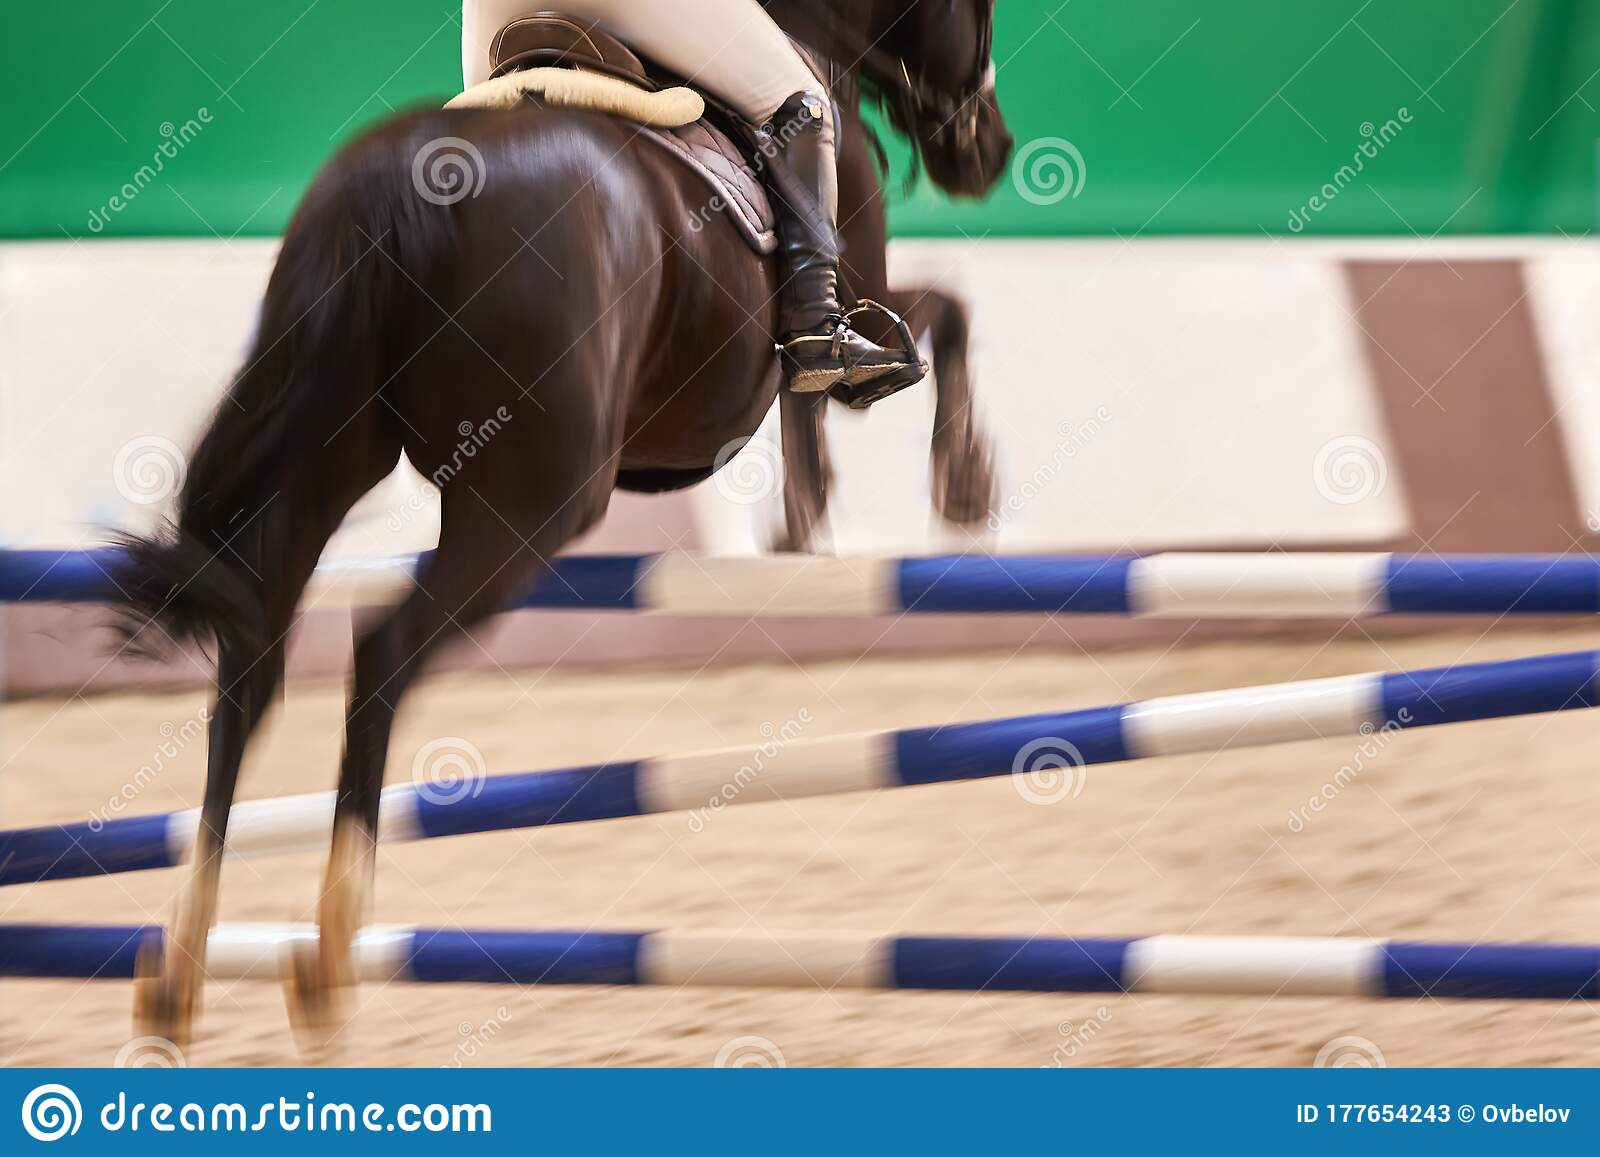 Rider On A Black Horse Jumps Over An Obstacle Motion Blur Focus On The Rider S Boot Stock Image Image Of Jockey Champion 177654243